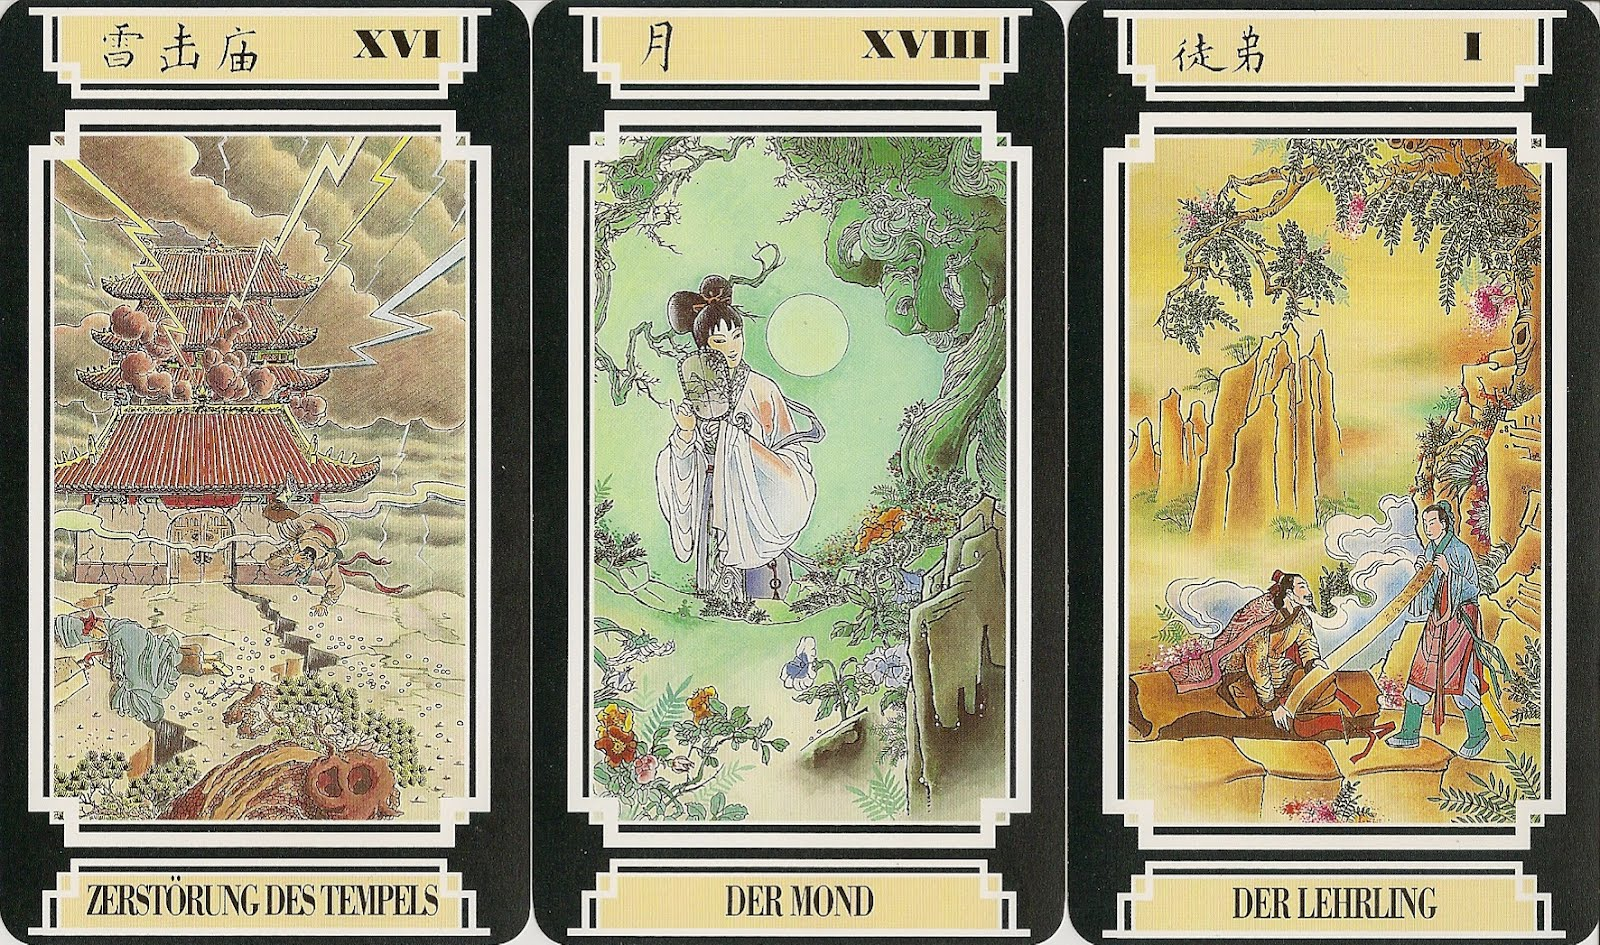 1. The Ace Of Swords